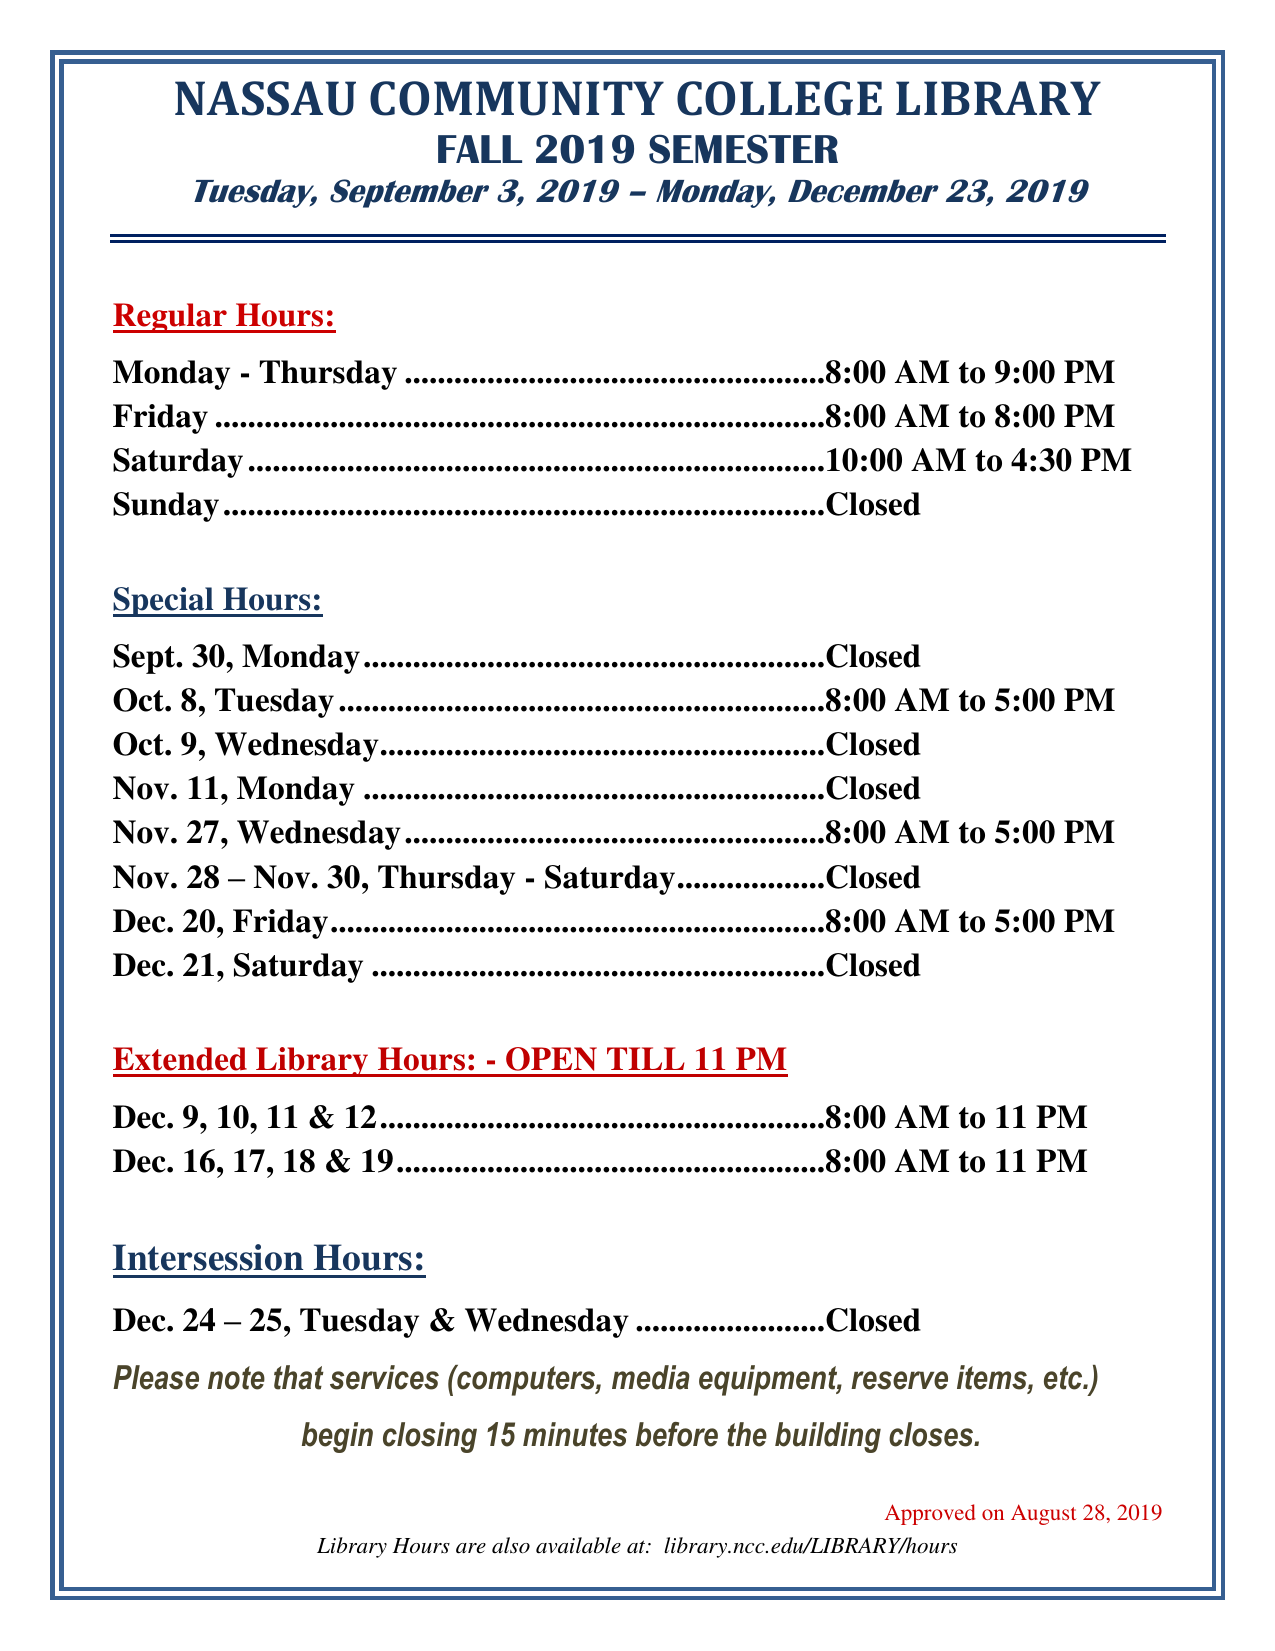 fall 2019 hours for the library